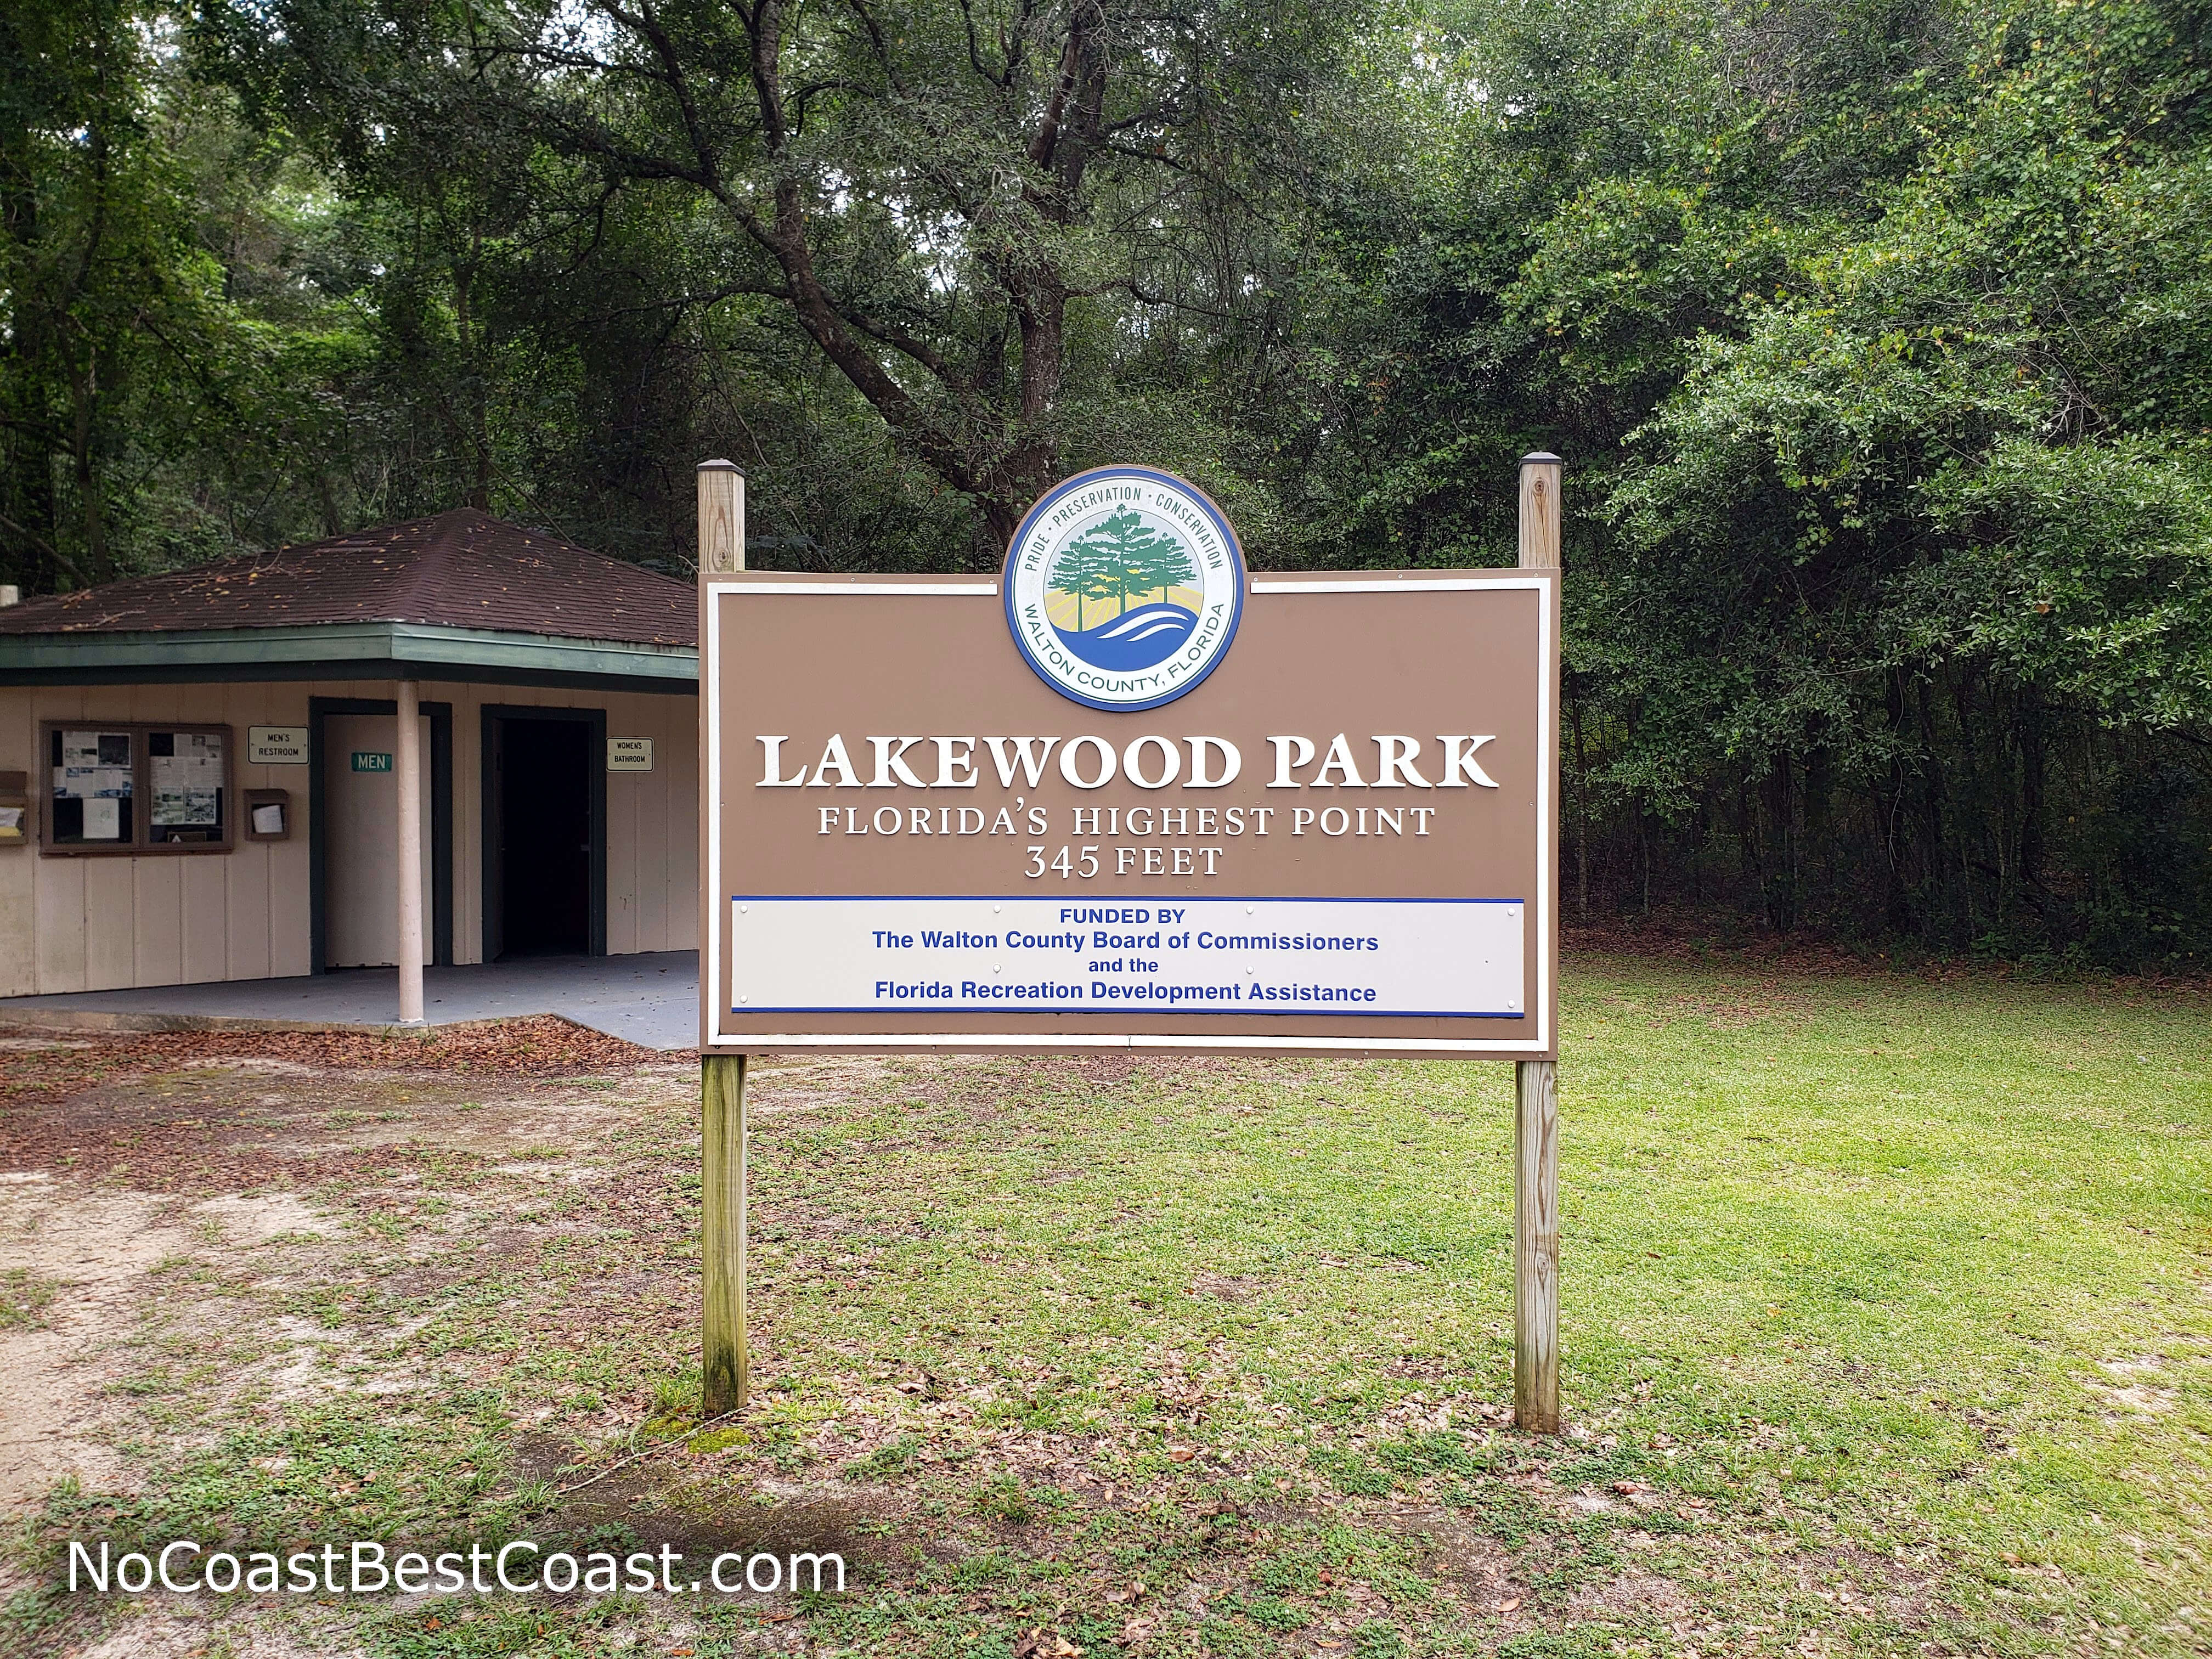 The Lakewood Park sign marking the elevation